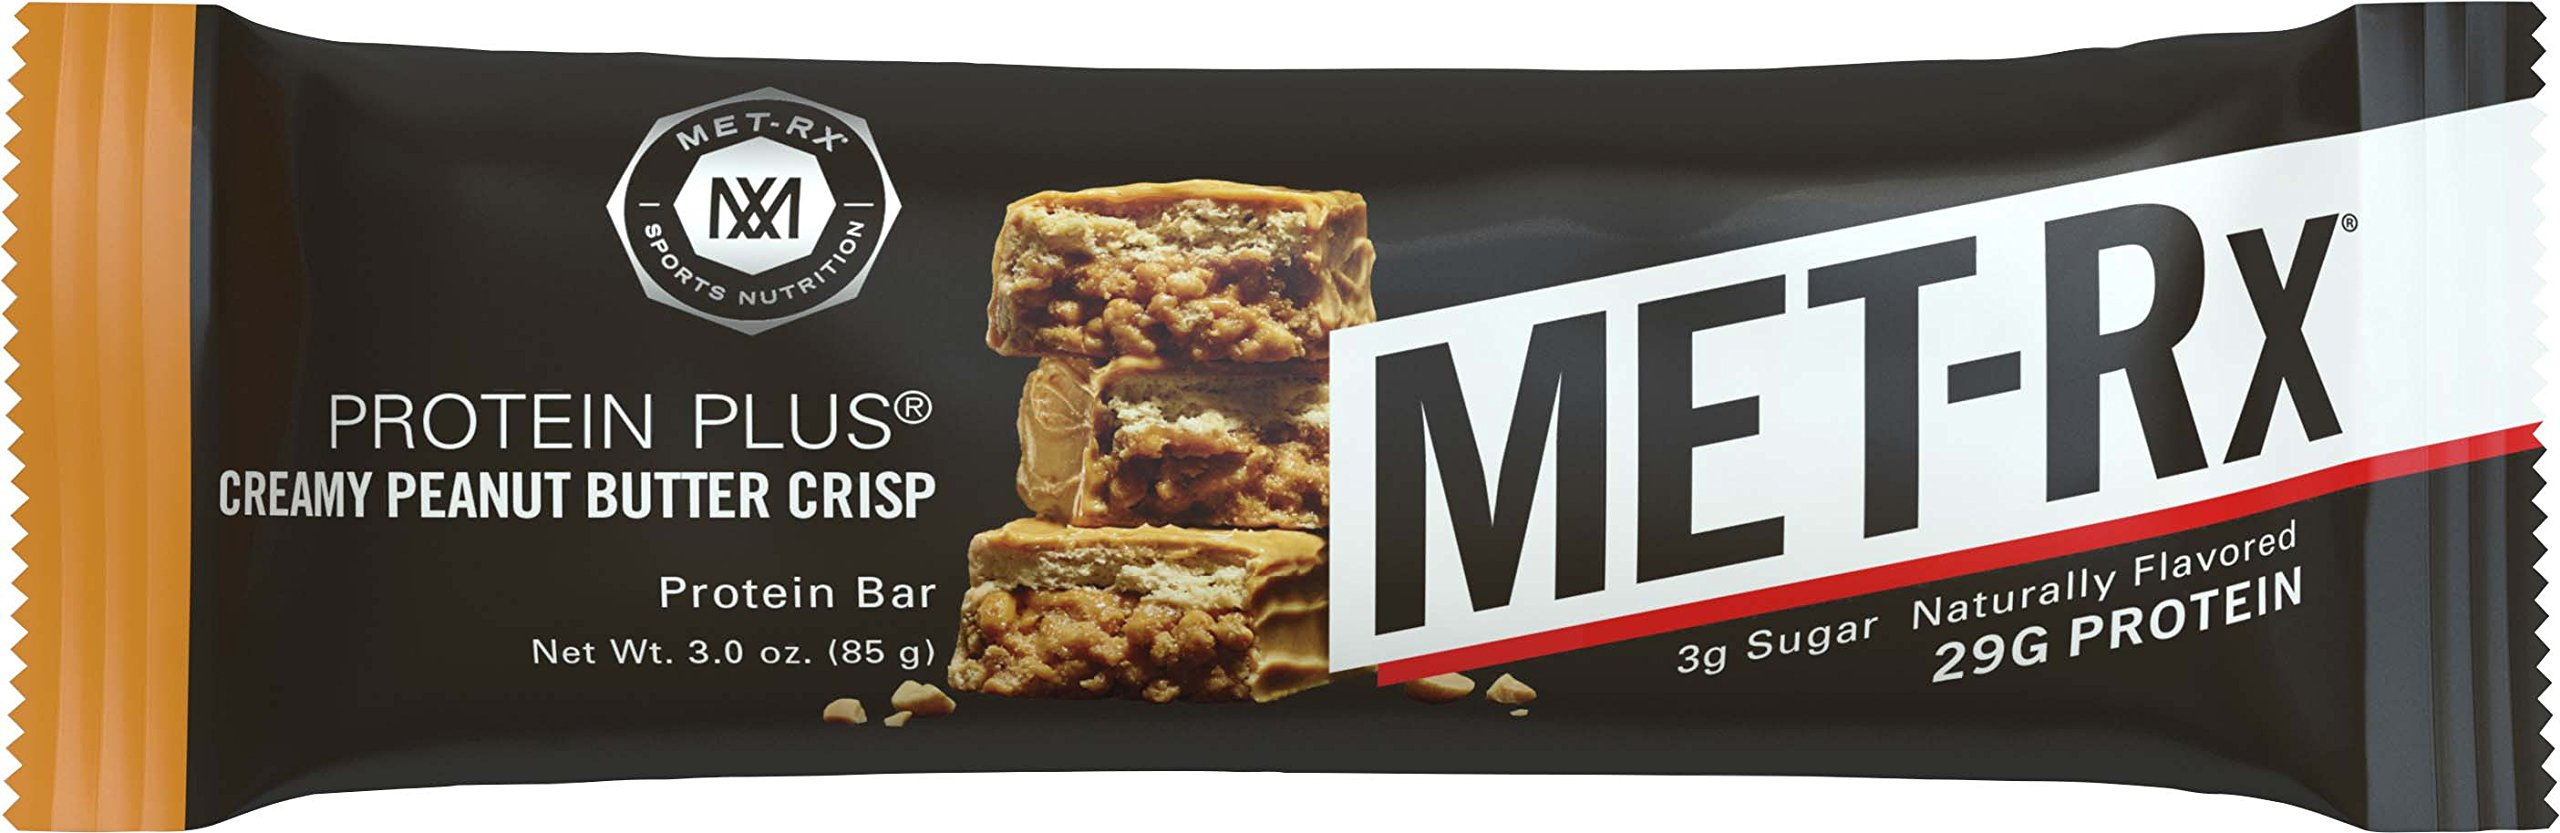 MET-Rx Protein Plus Bar, Great as Healthy Meal Replacement, Snack, and Help Support Energy, Gluten Free, Creamy Peanut Butter Crisp, 85 g, 9 Count by MET-Rx